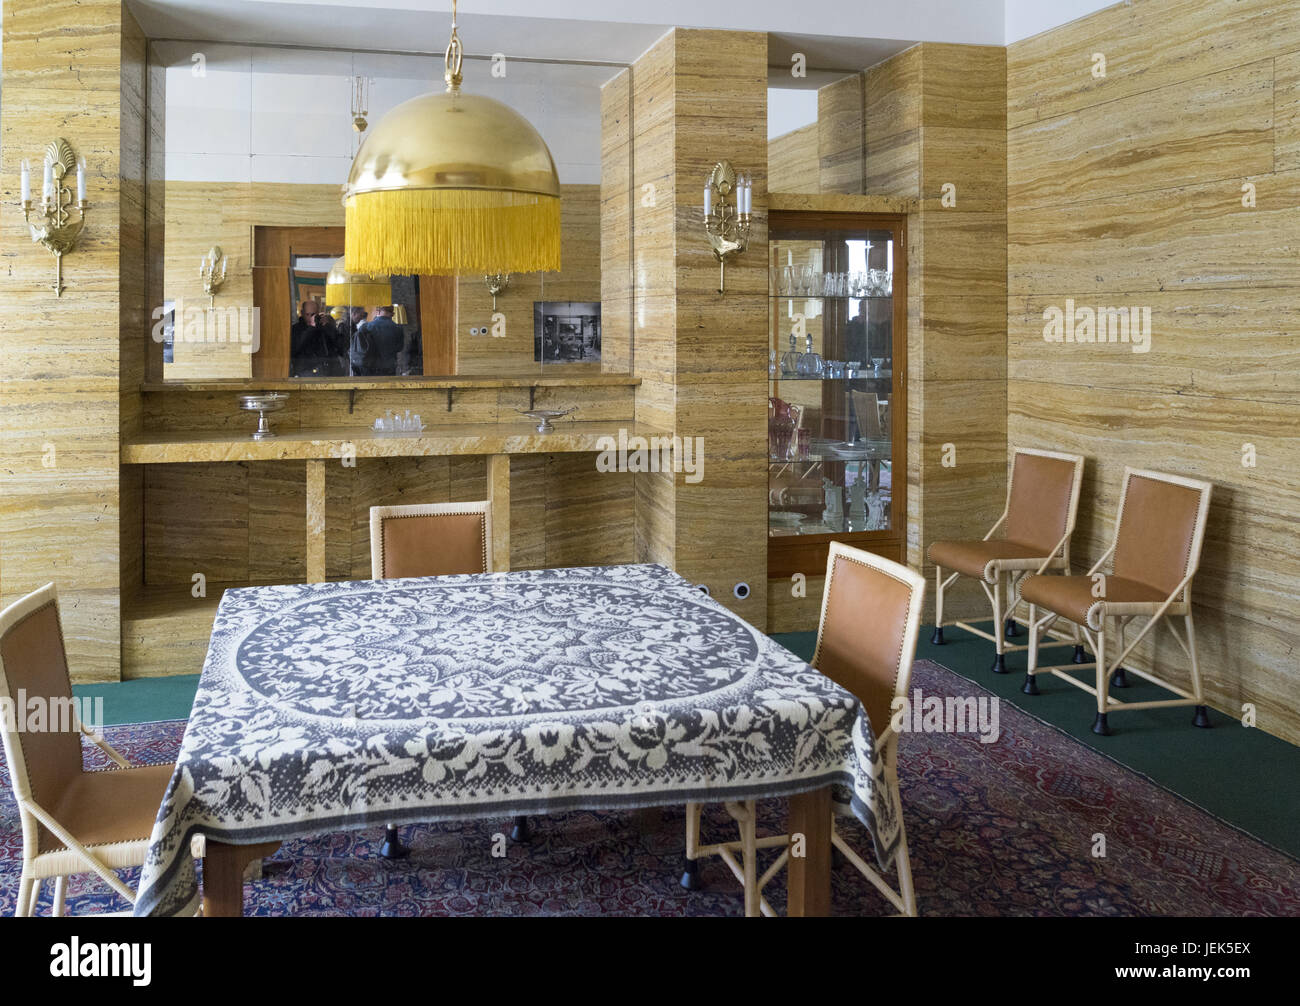 Adolf Loos Interieur in Pilsen - Stock Image